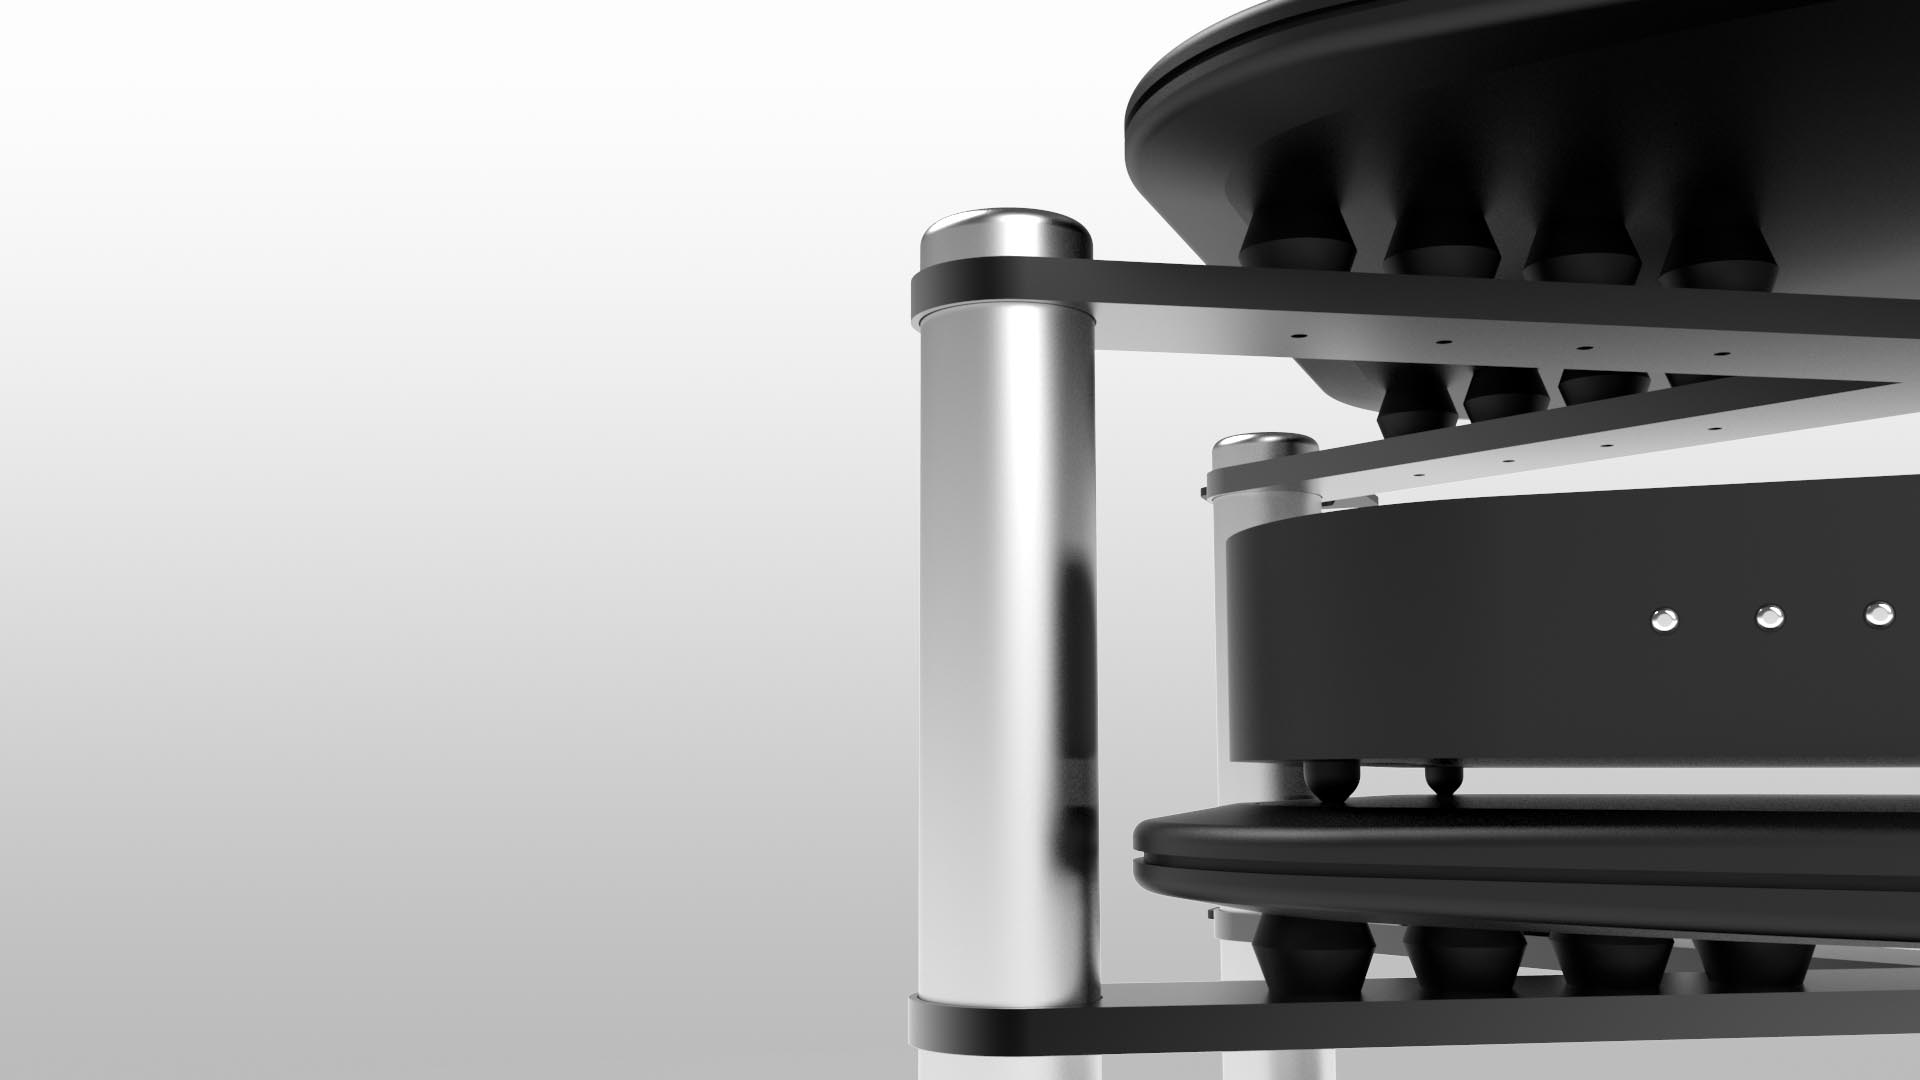 Purpose Made Silicon Isolators  When you sit your prized equipment on each level, expect to feel a little give, as the silicon isolators kick in to provide the most exceptional level of isolation in our modular racking system.  Available in Black or White